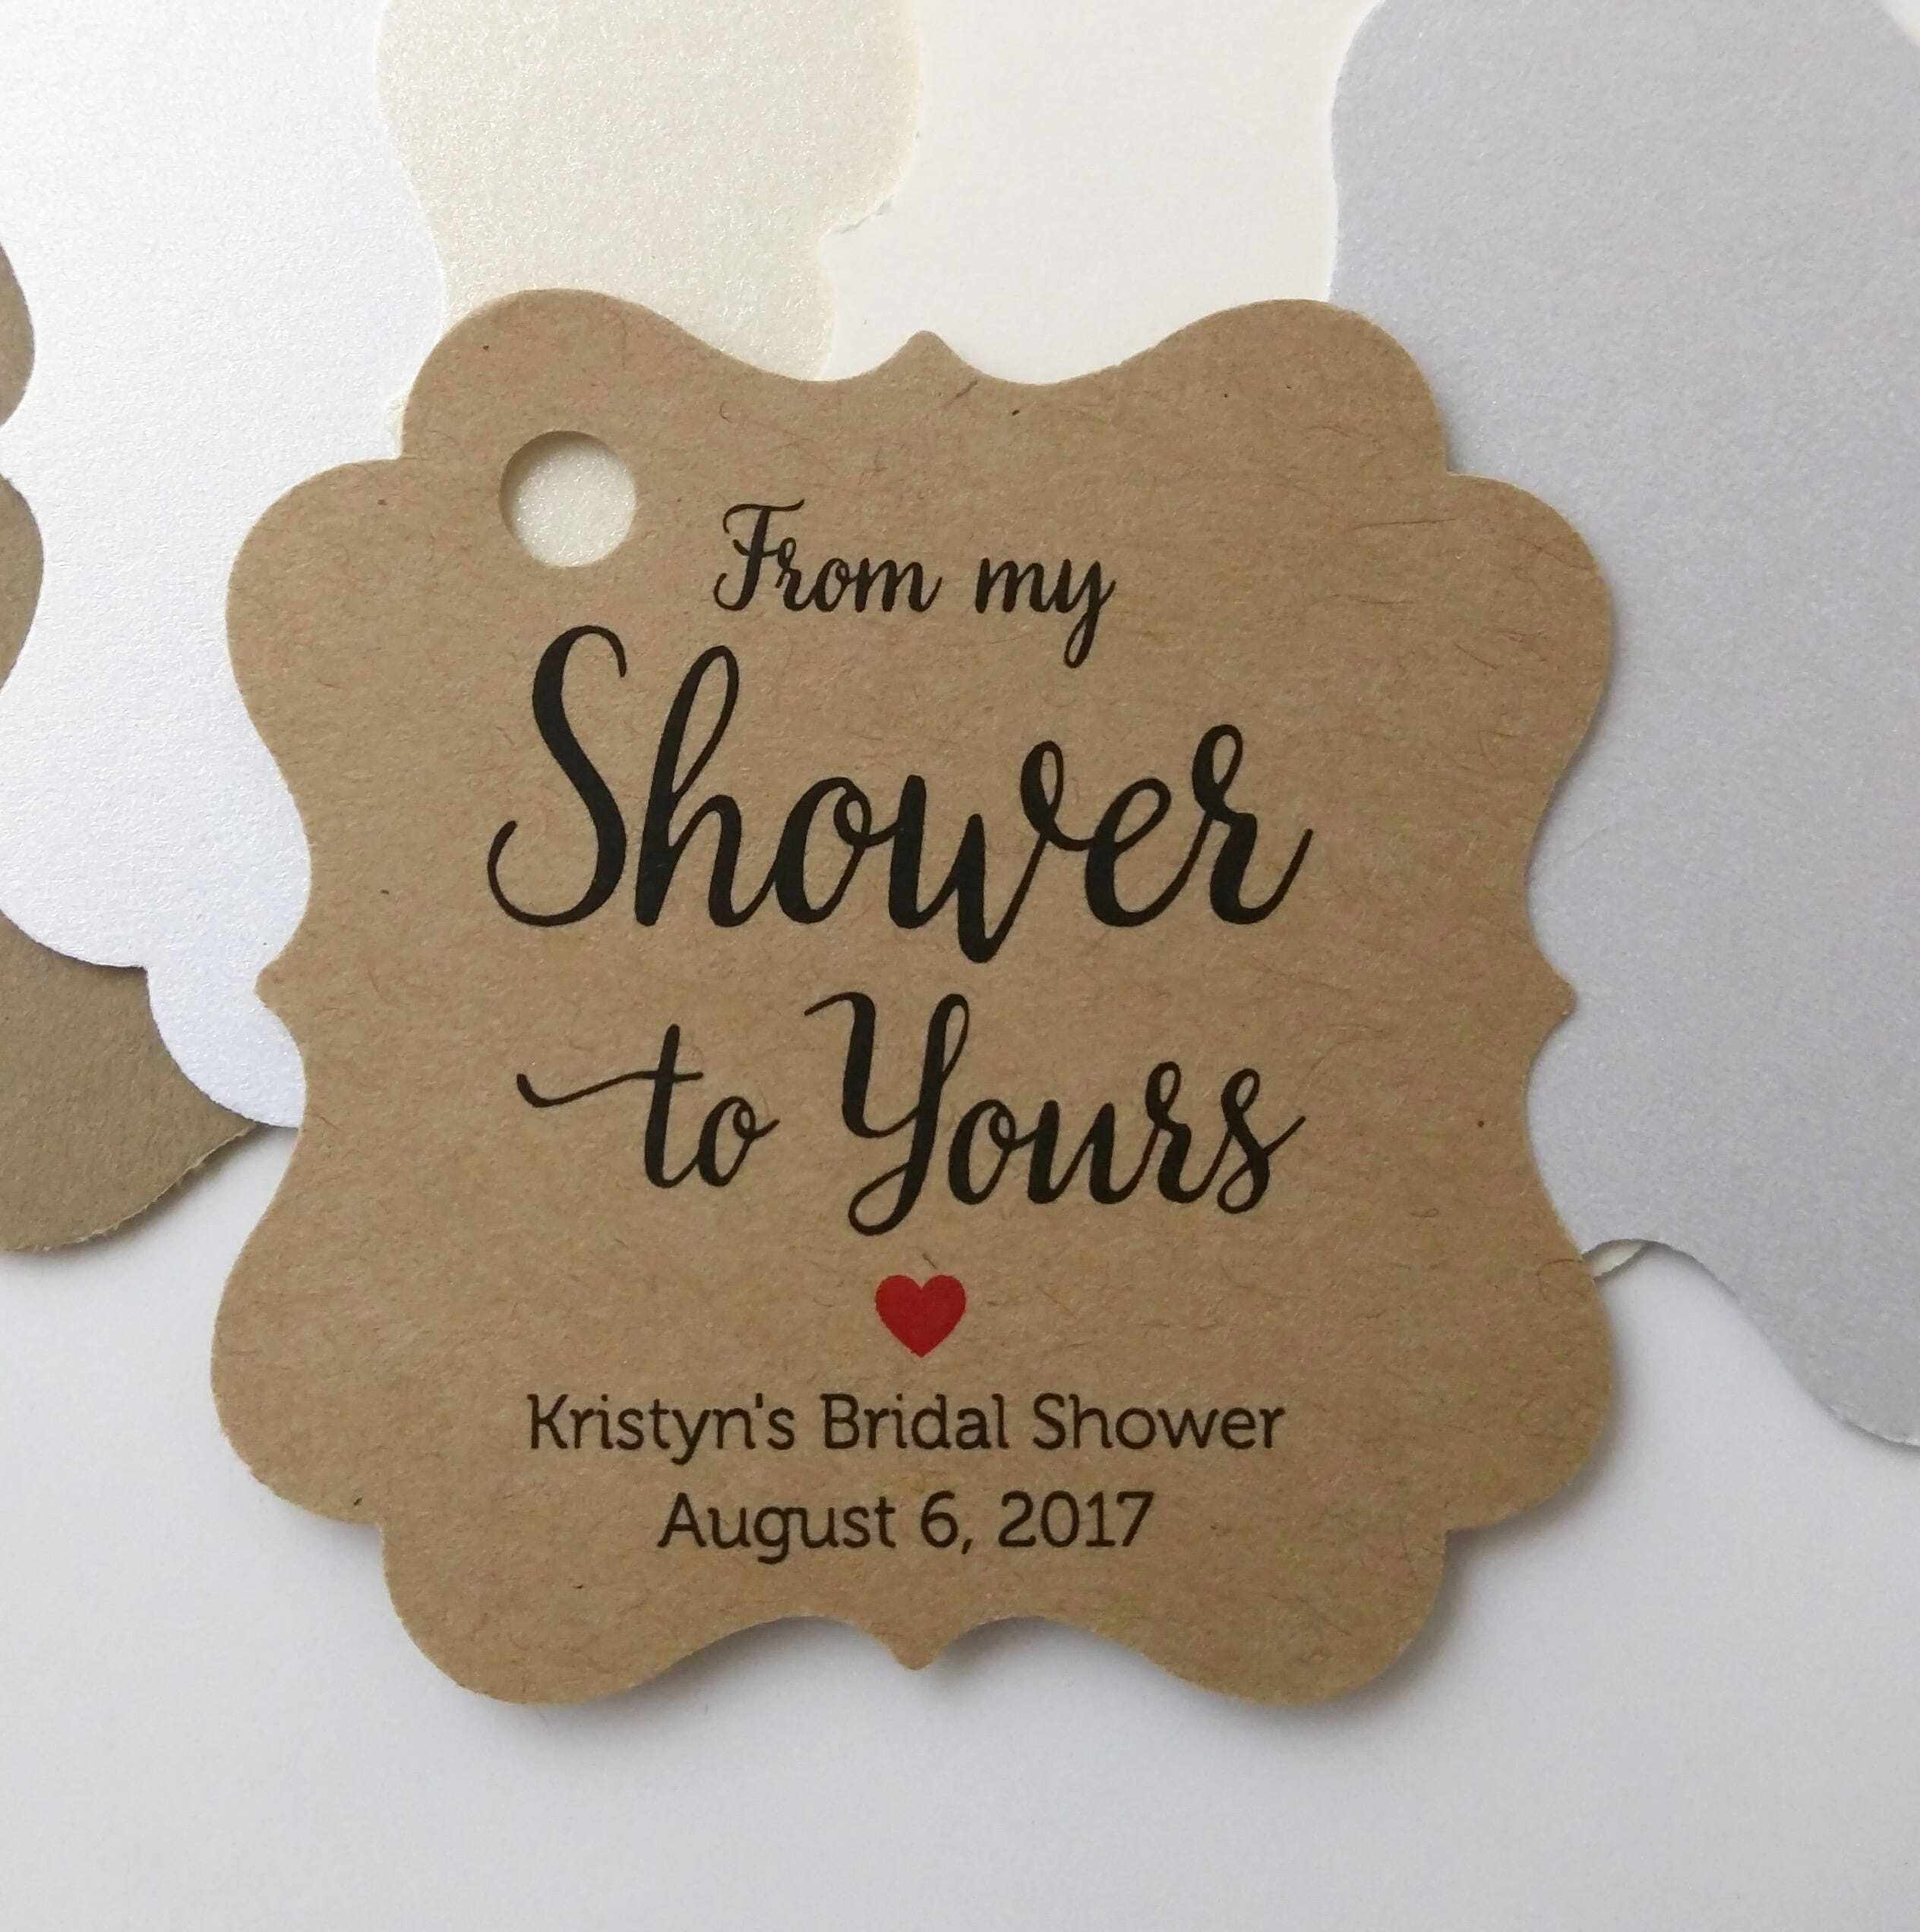 from my shower to yours tags favor tag bridal shower tags gift tags baby shower tags bride to be wedding shower baby shower favor tag